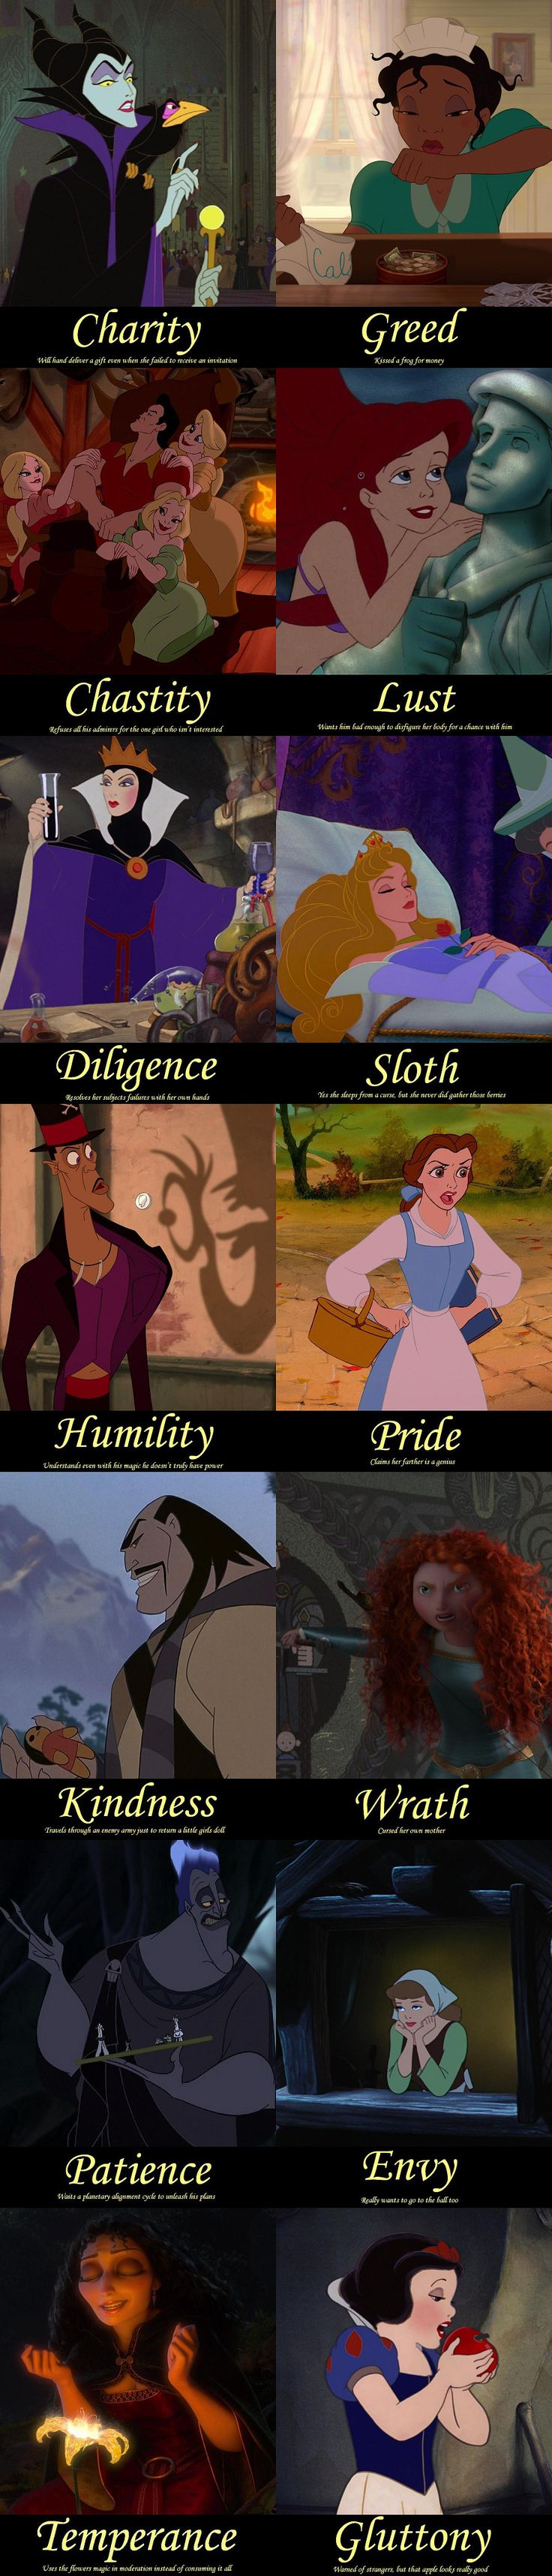 oooh, interesting. | Disney Villain Virtues and Princess Sins by stachan.deviantart.com on @deviantART